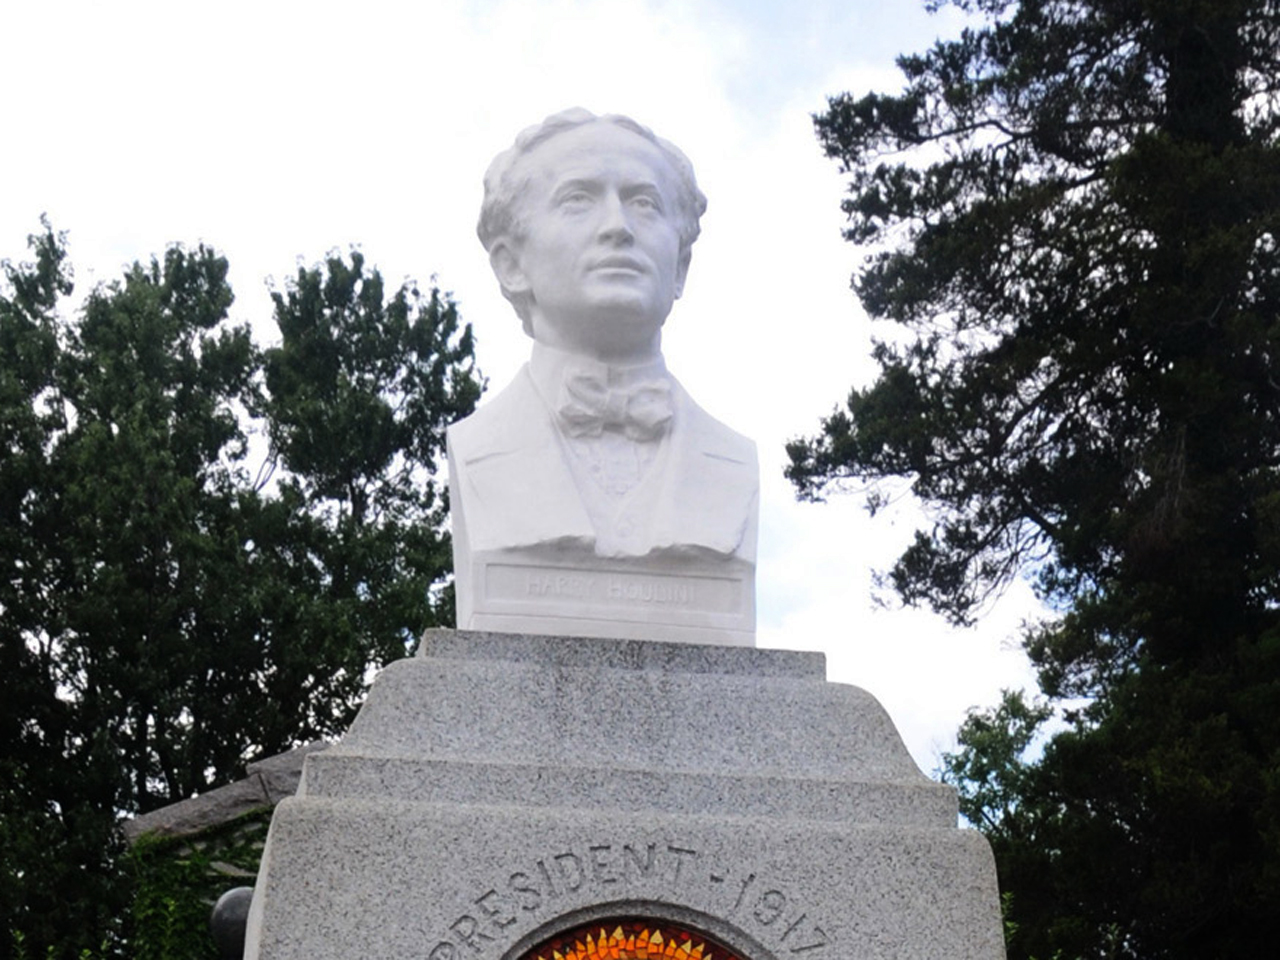 Magicians stage effort to restore Houdini's grave - CBS News